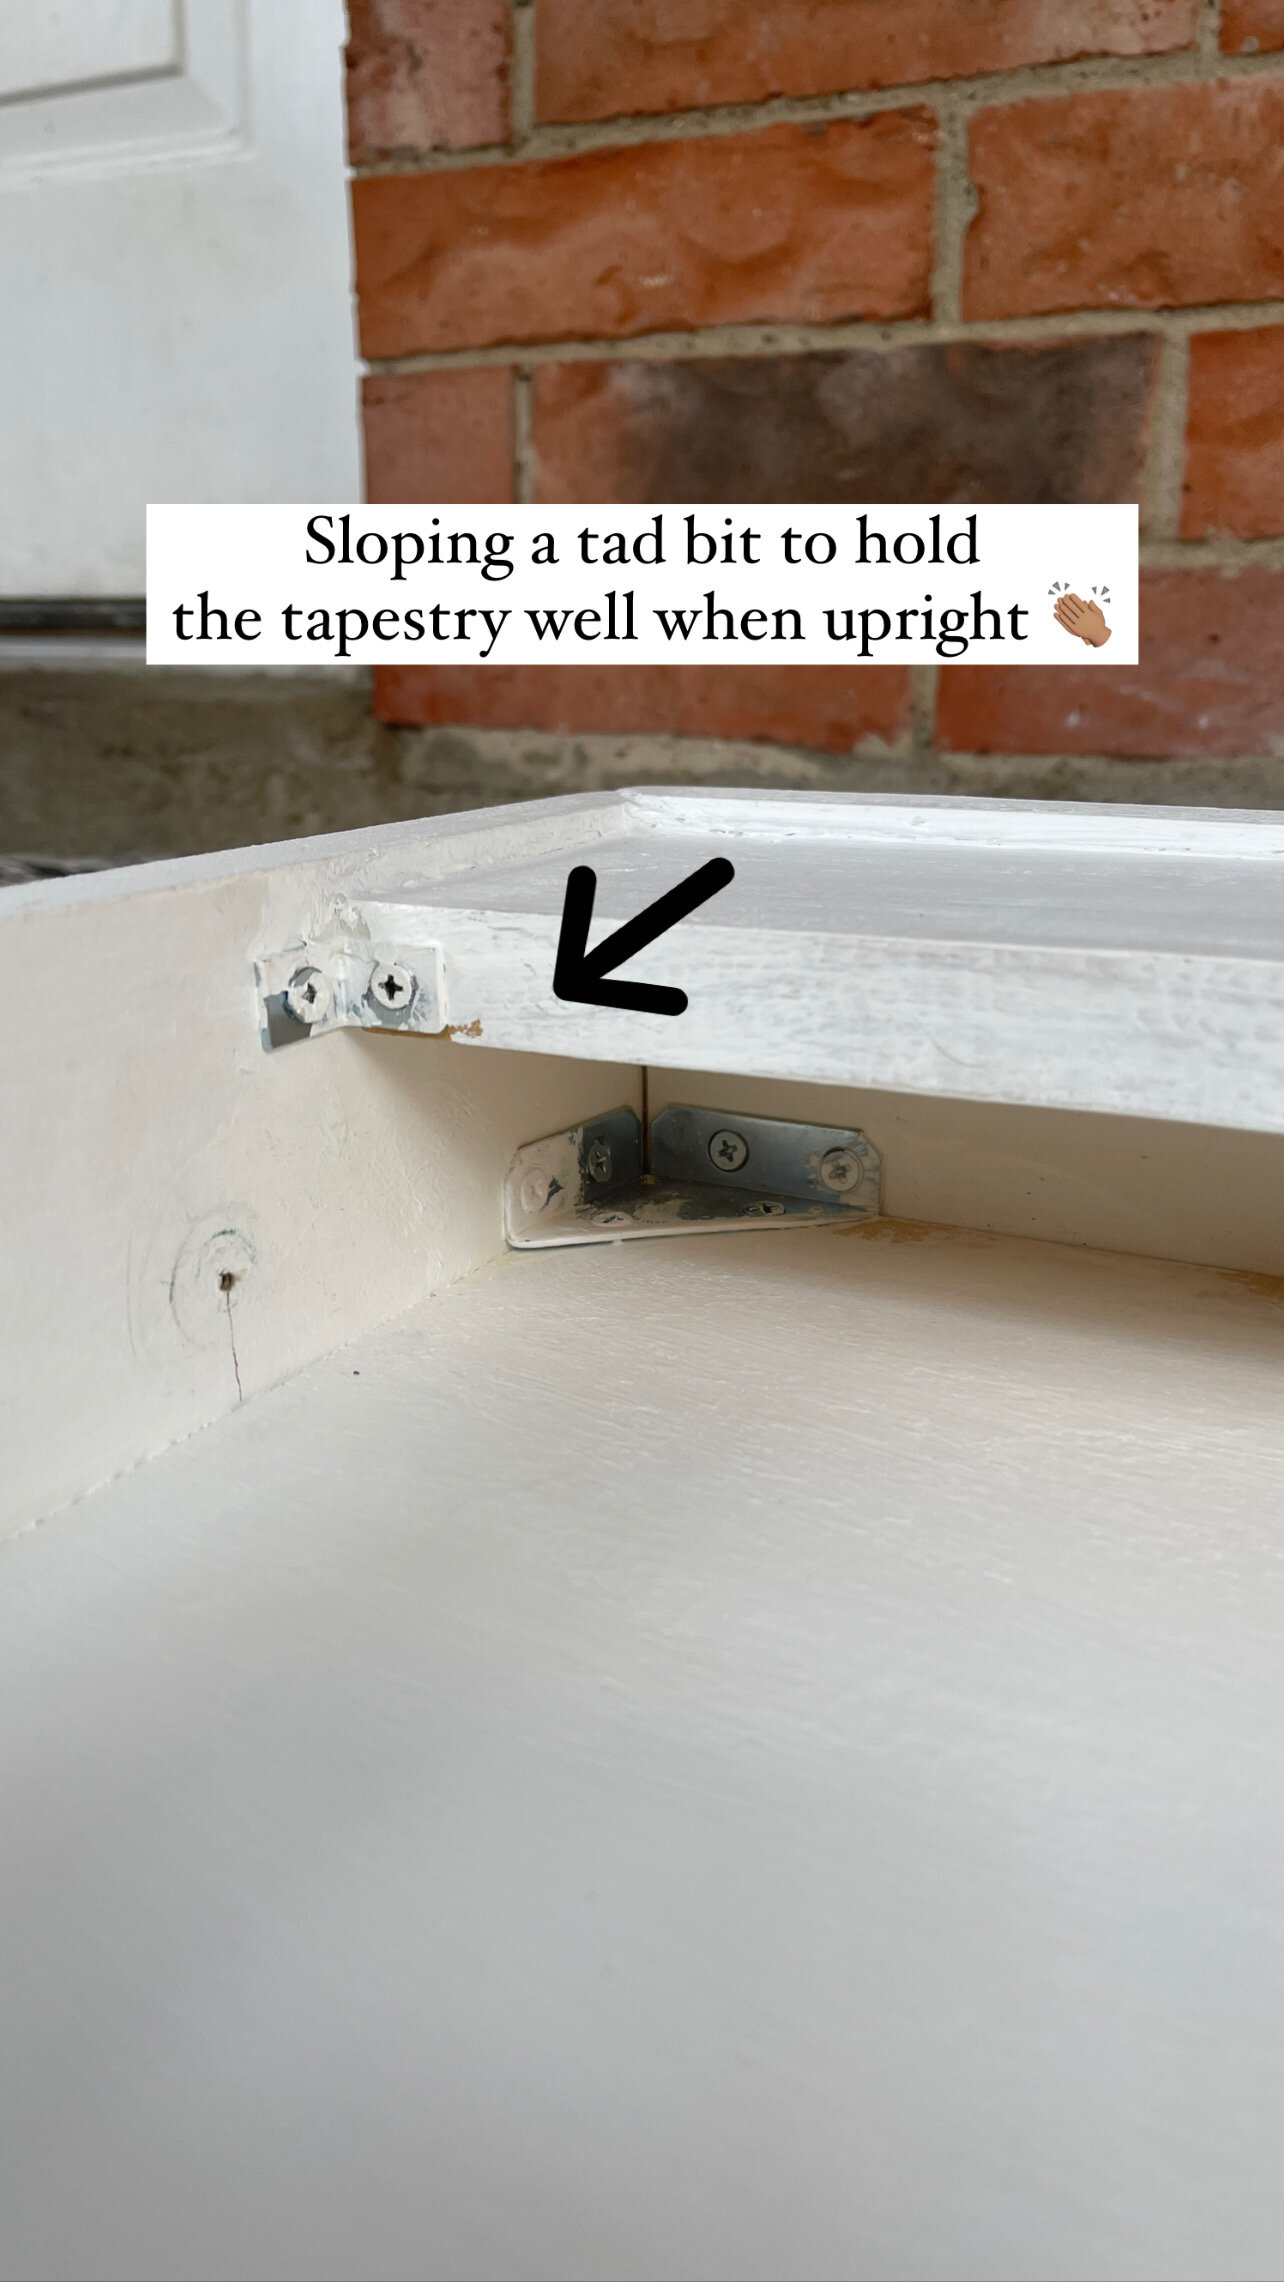 Building Tip - An important part of the design is that at the front of the shelf where you tuck in the rolled-up tapestry: I angled the board slightly forward so that gravity pulls the tapestry into the hidden shelf.